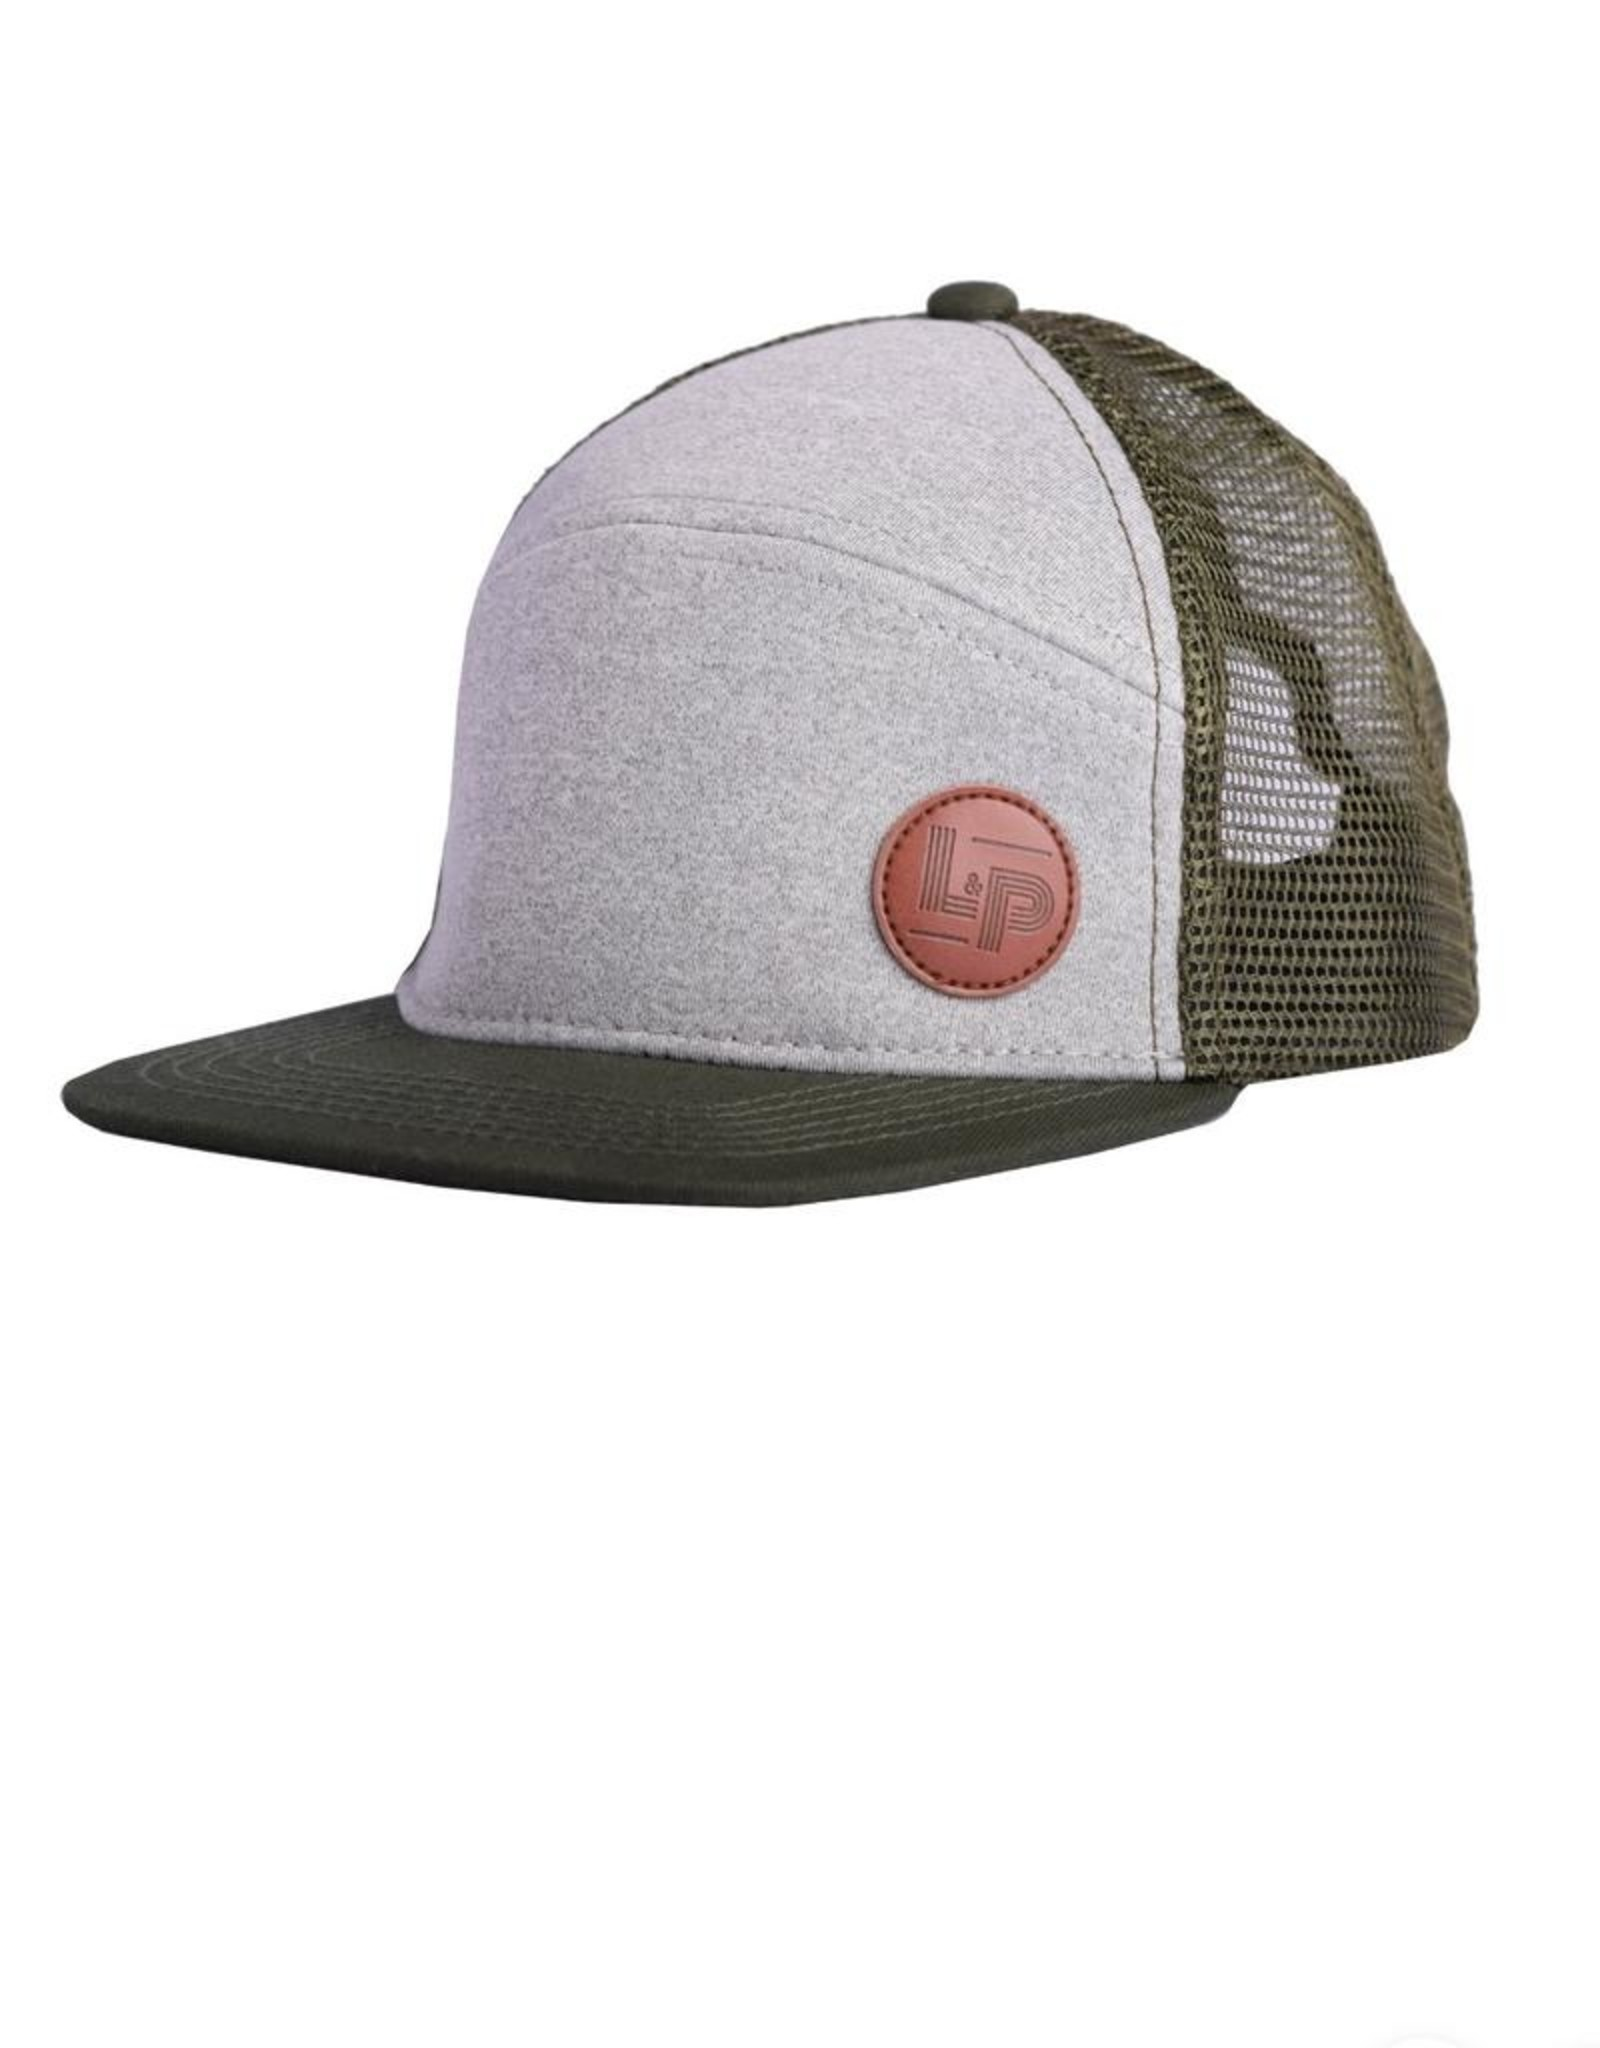 L&P Apparel Green Orleans Snapback Cap